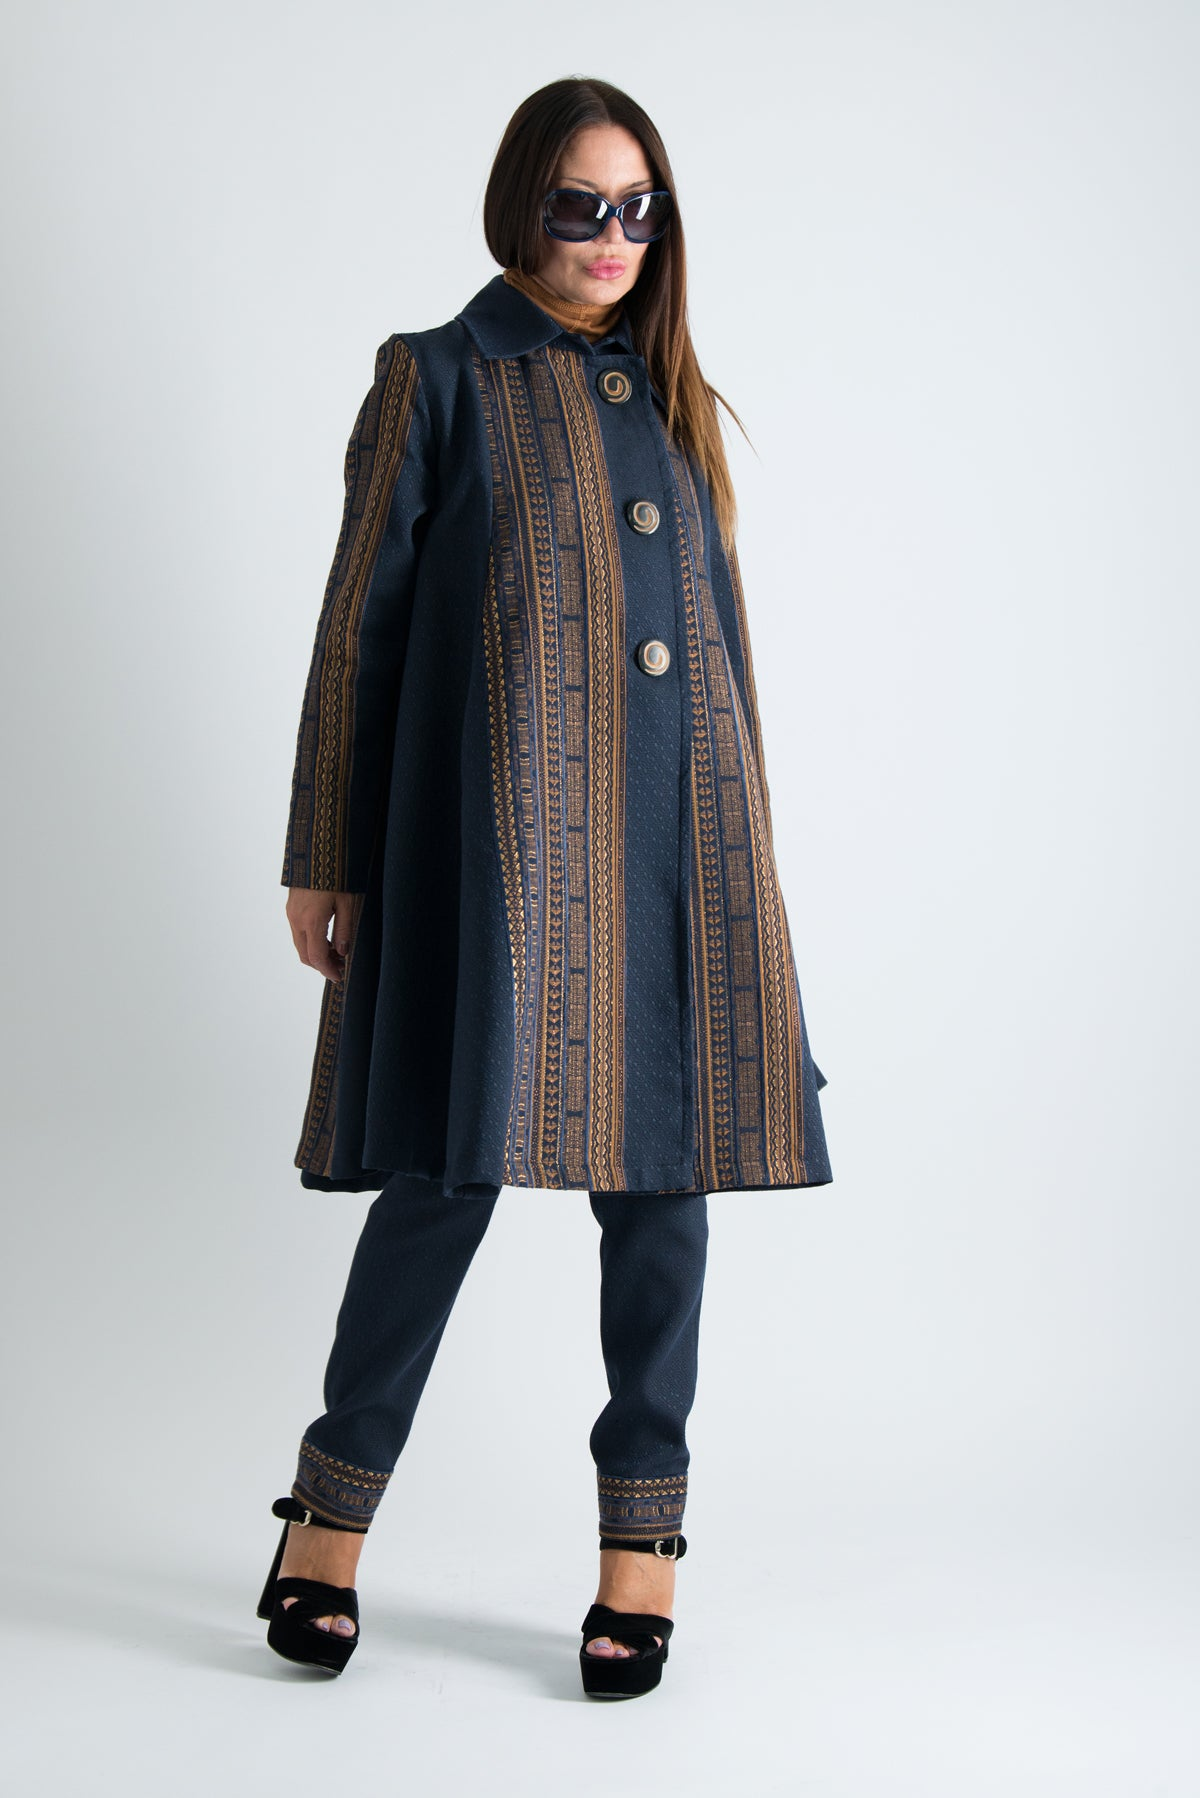 Autumn Jacquard Elegant Coat, Trench Woman Coat